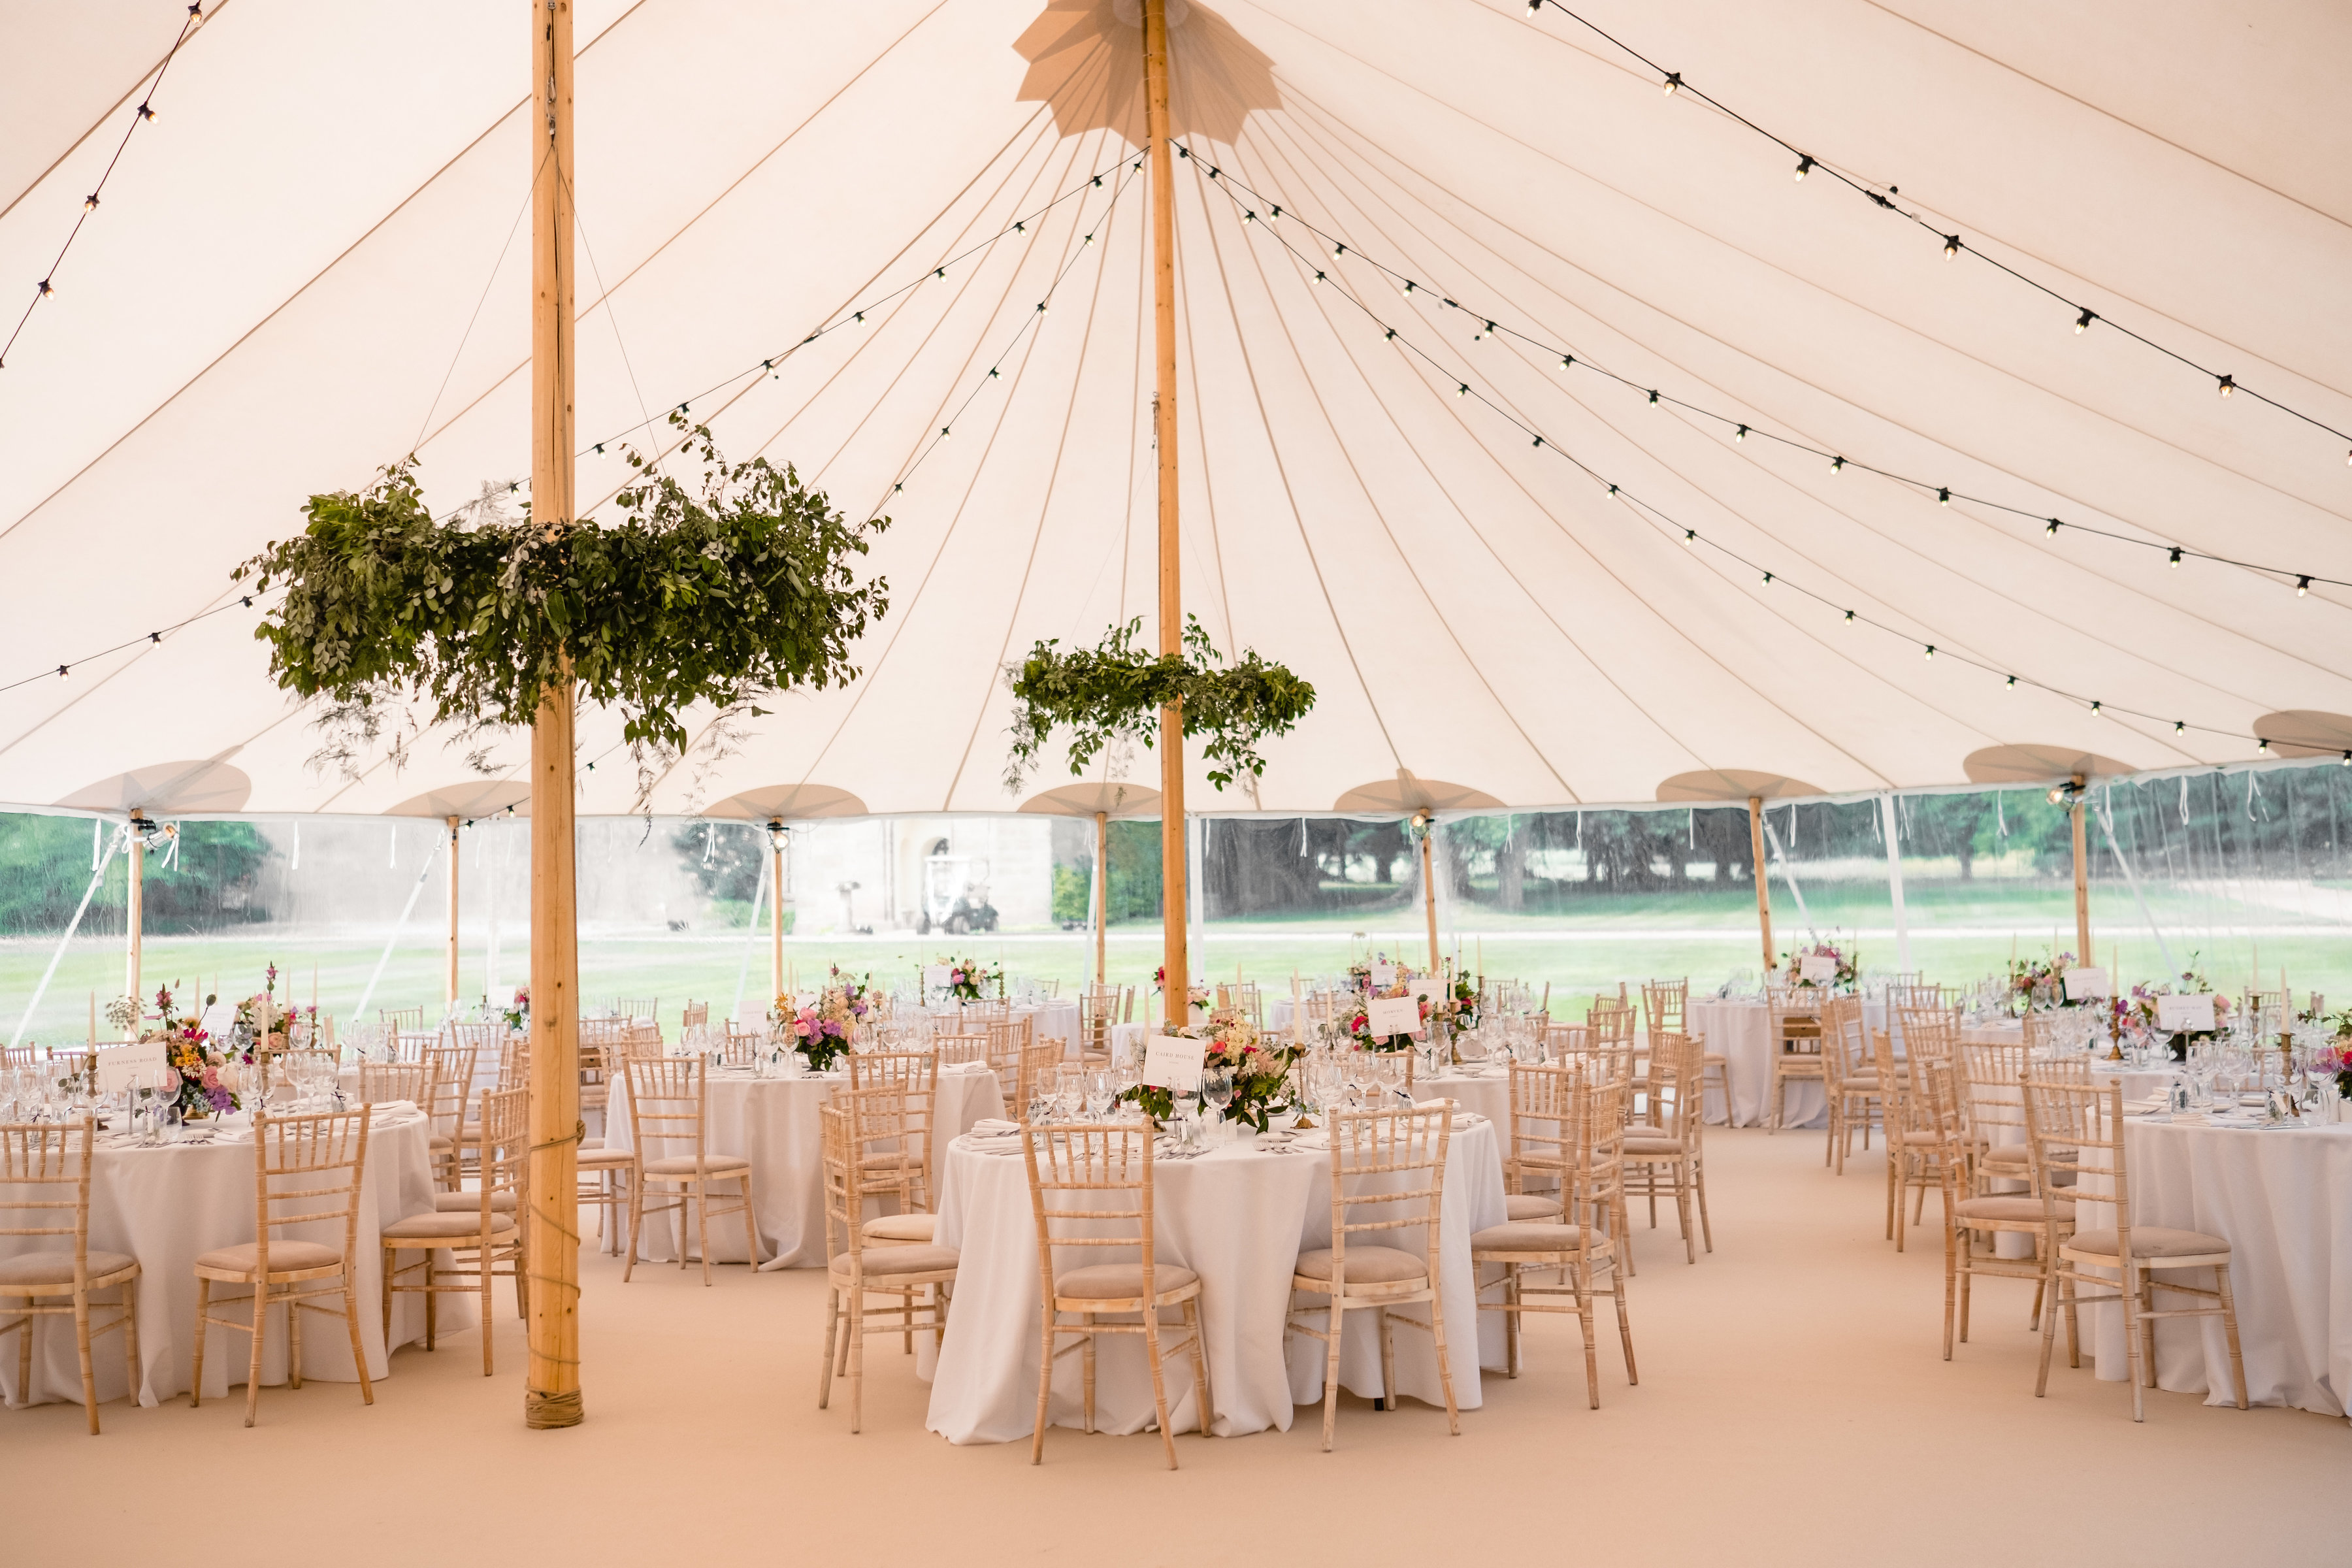 PapaKåta couple Lucy & Tom's Sperry Wedding at Gordon Castle Scotland captured by Helen Abraham Photography- Sperry Tent interior